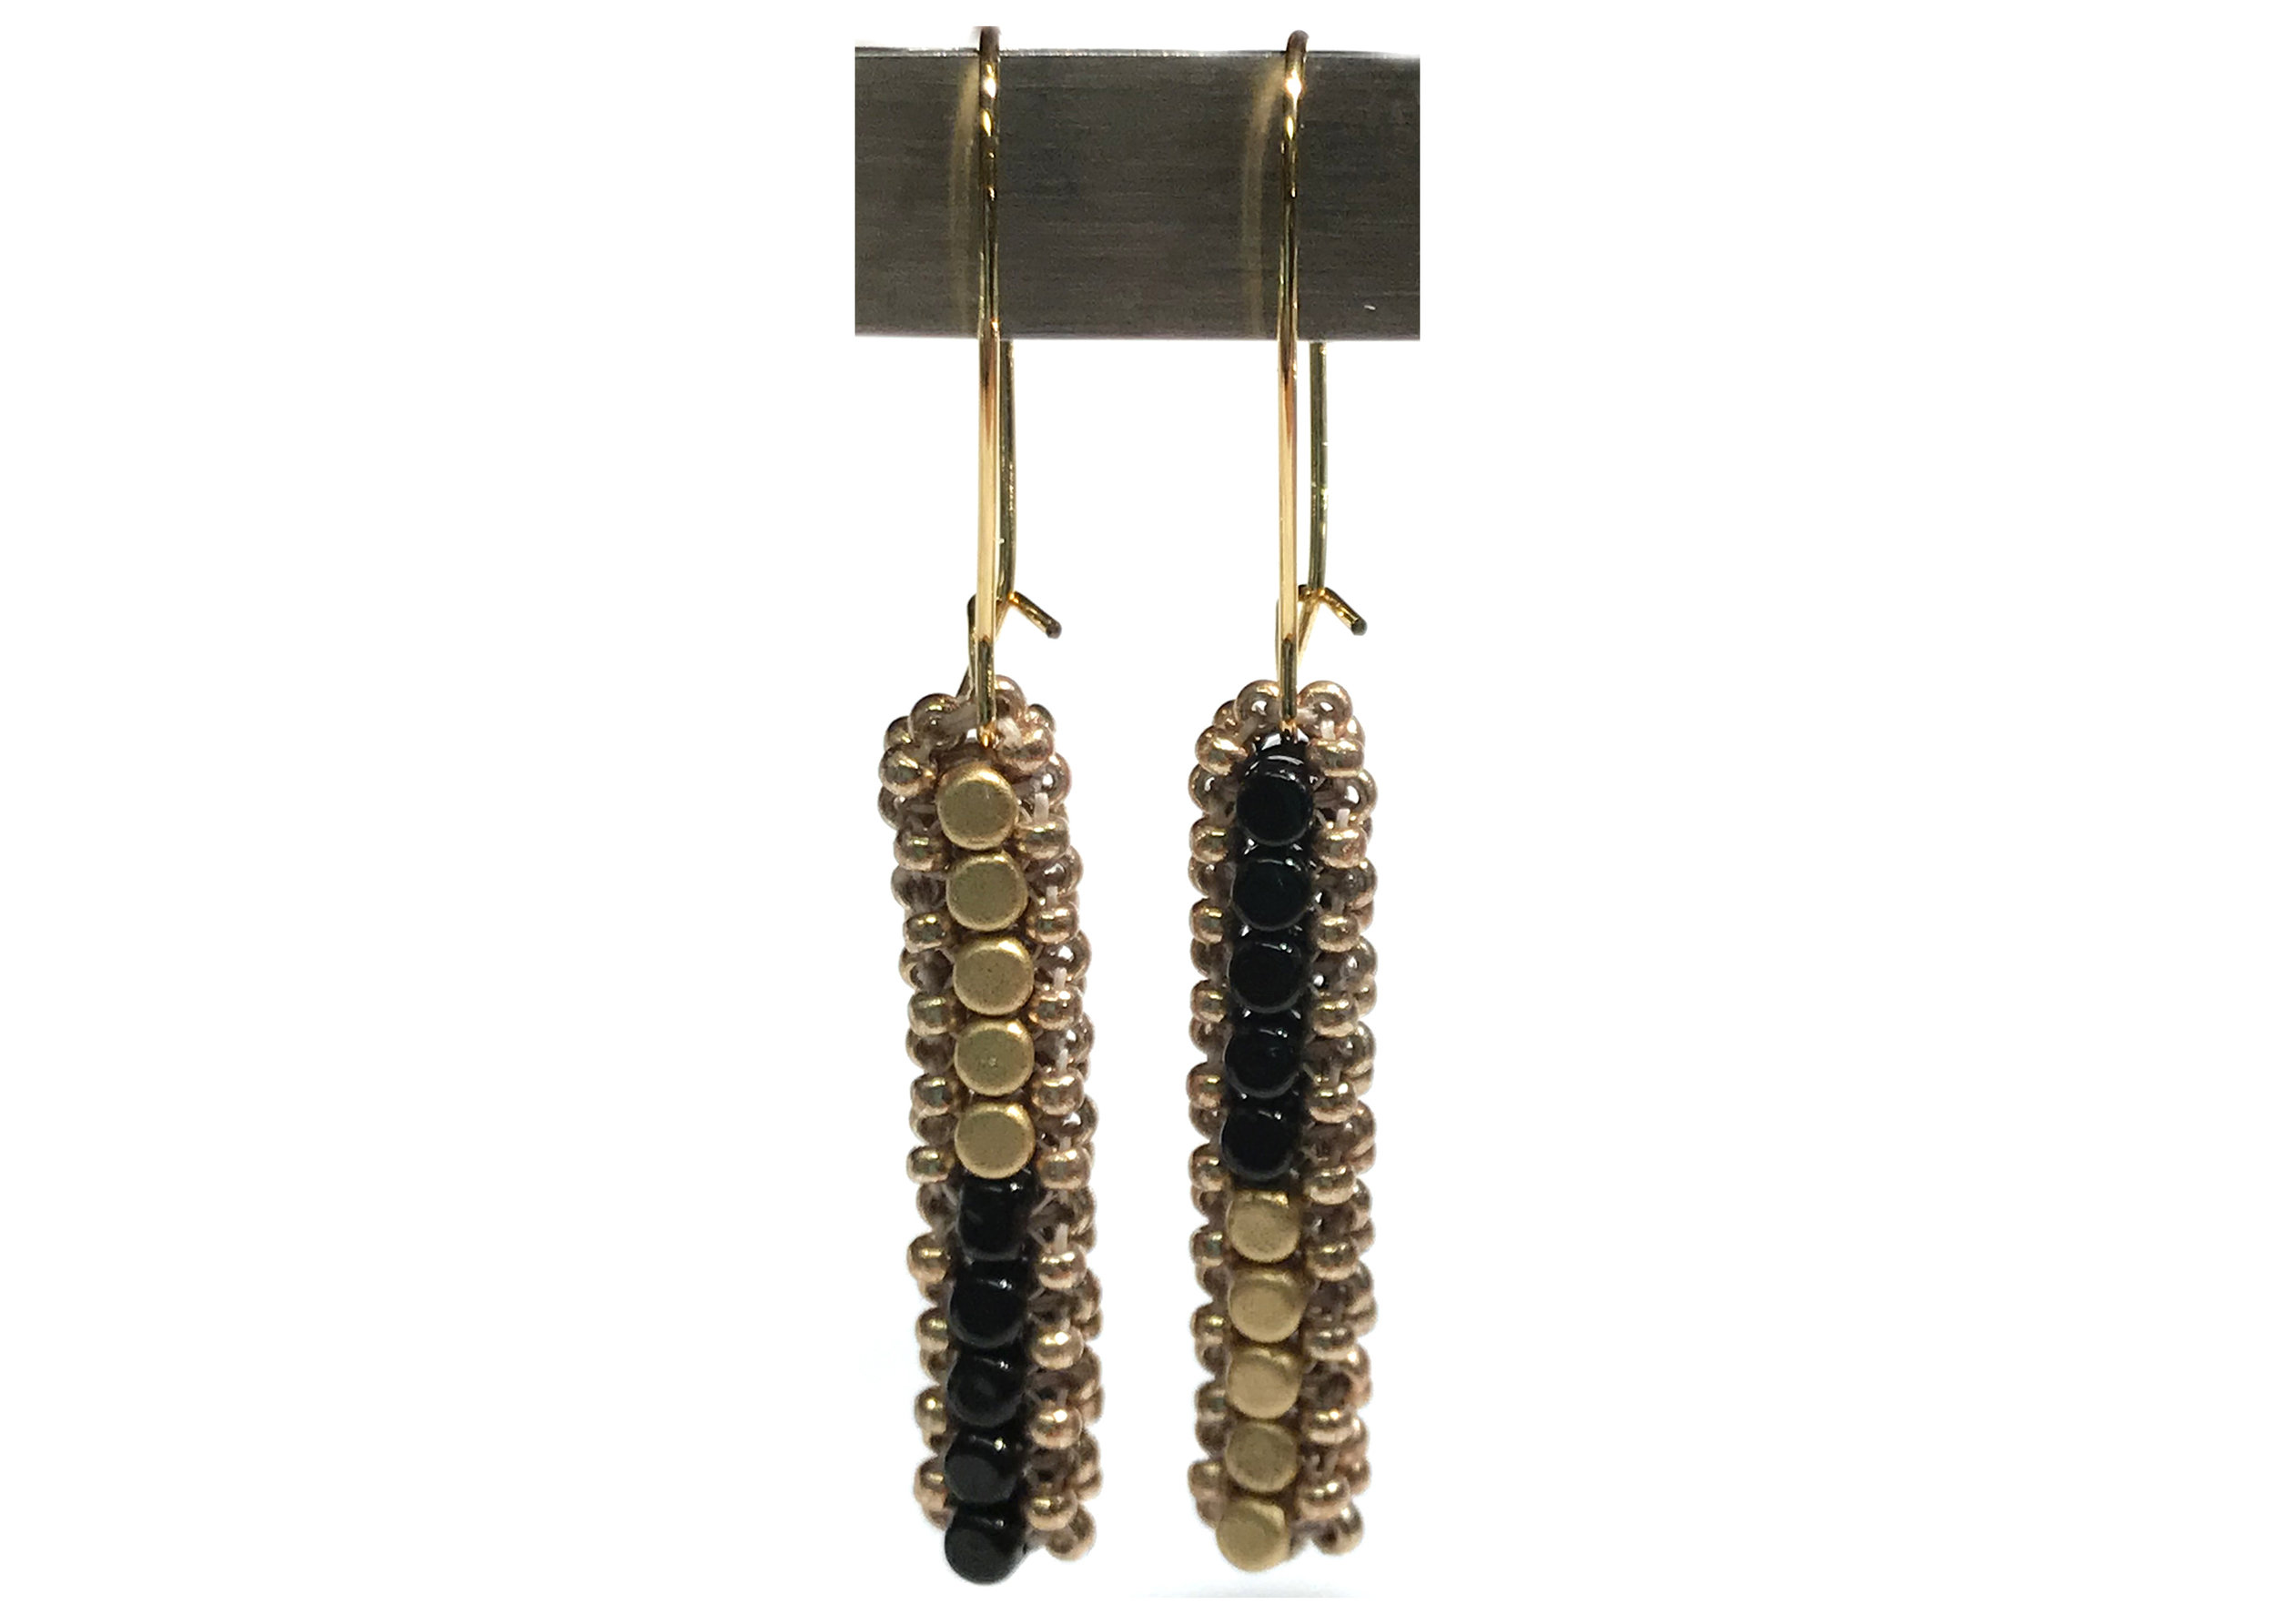 Industrial Chic Earrings  AM